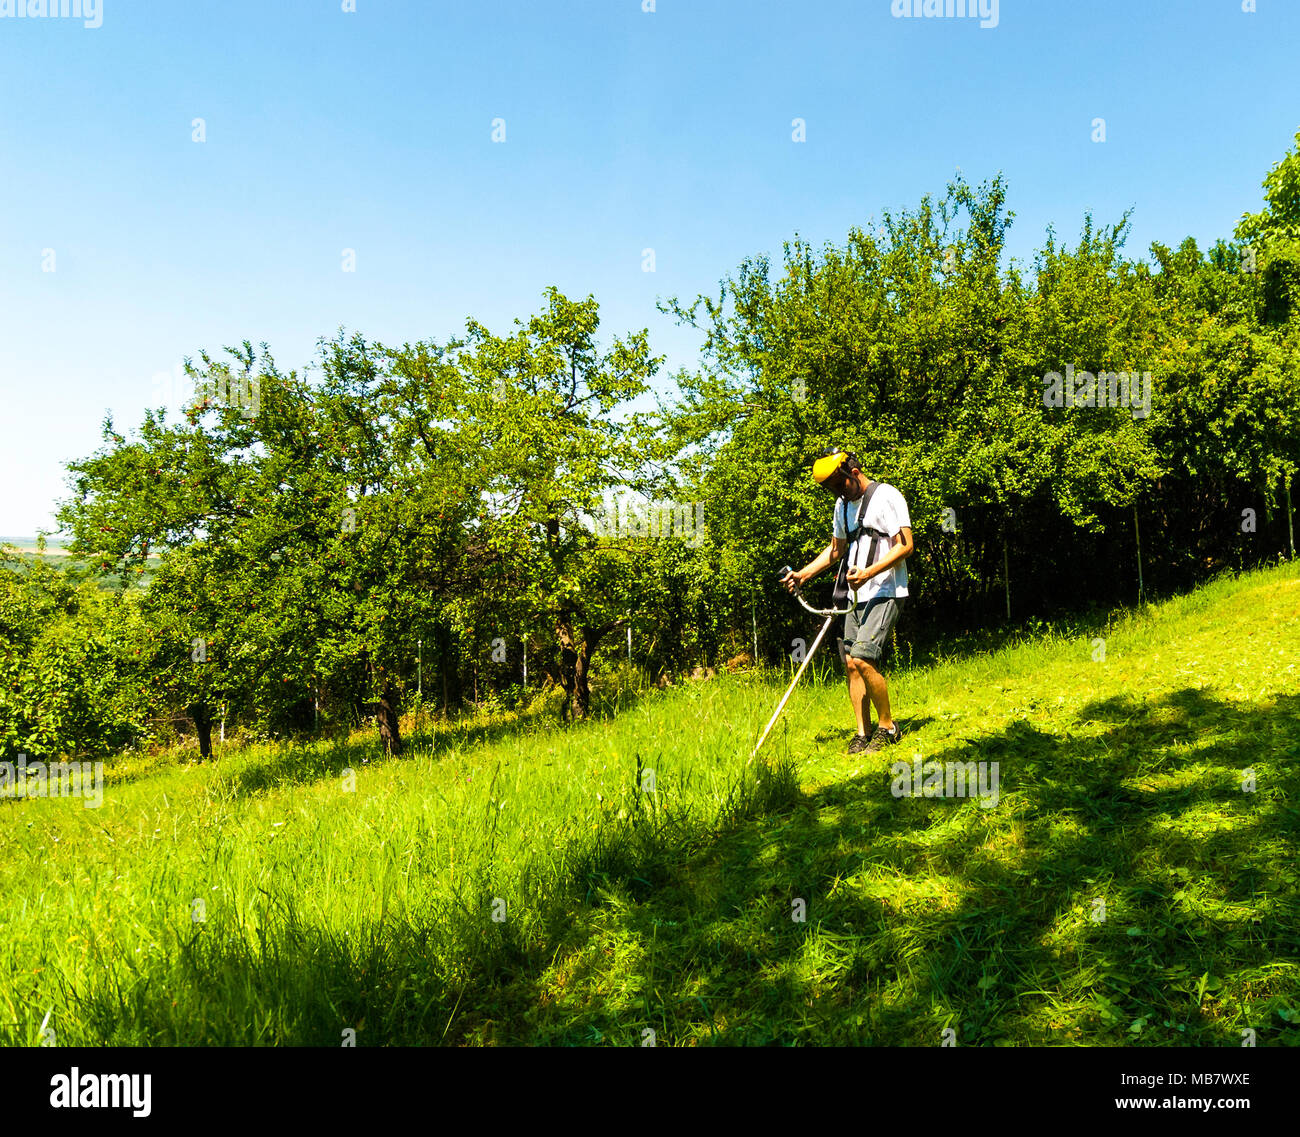 Man mowing green wild grass field using brush cutter mower or power tool string lawn trimmer. Seasonal garden cleaning and mowing concept. Copy space. - Stock Image